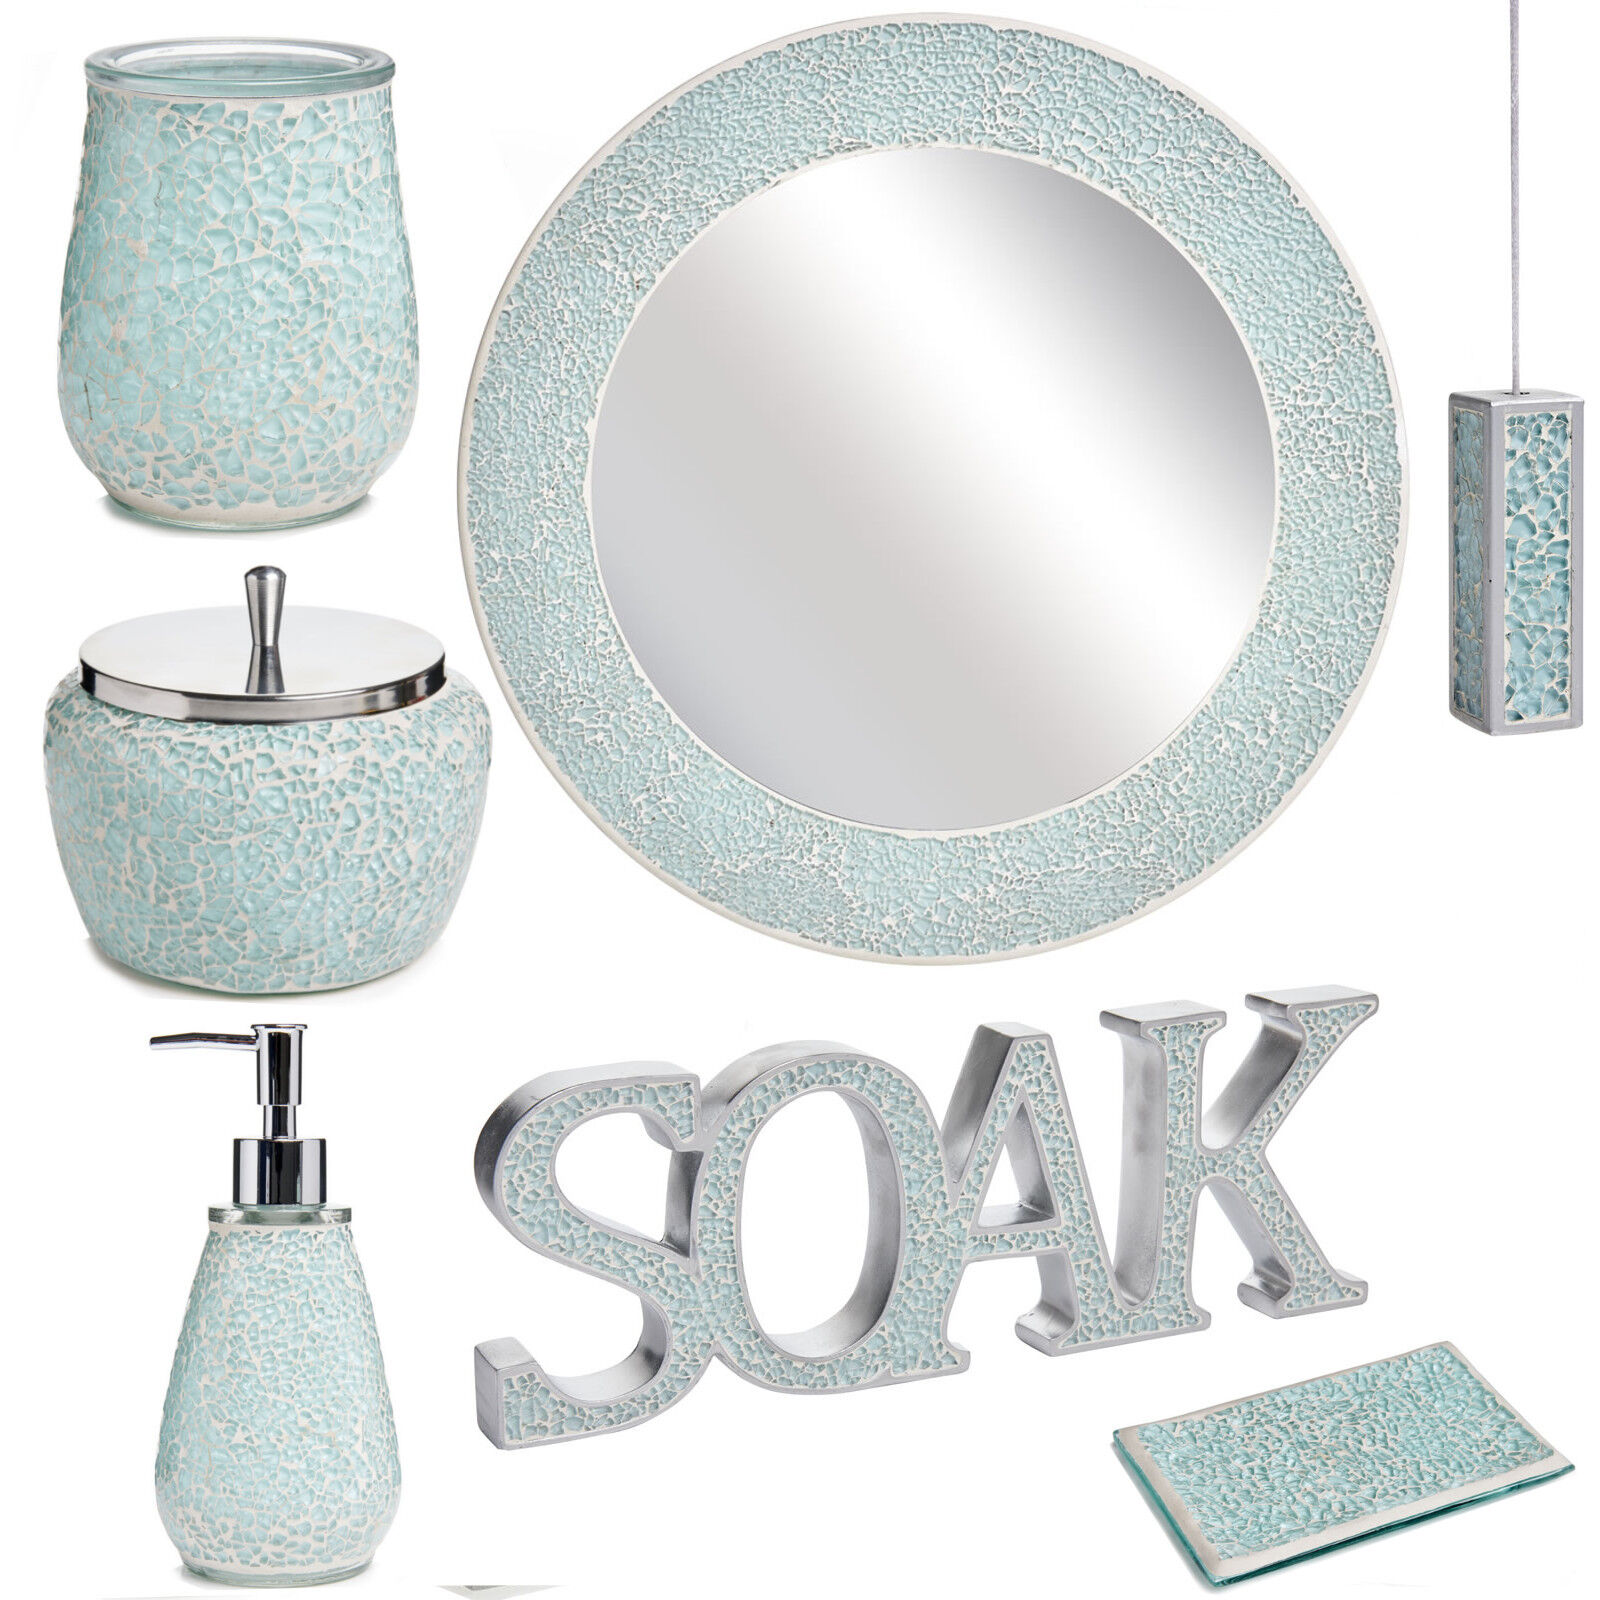 Aqua sparkle mosaic bathroom accessories set ebay for Mosaic bath accessories